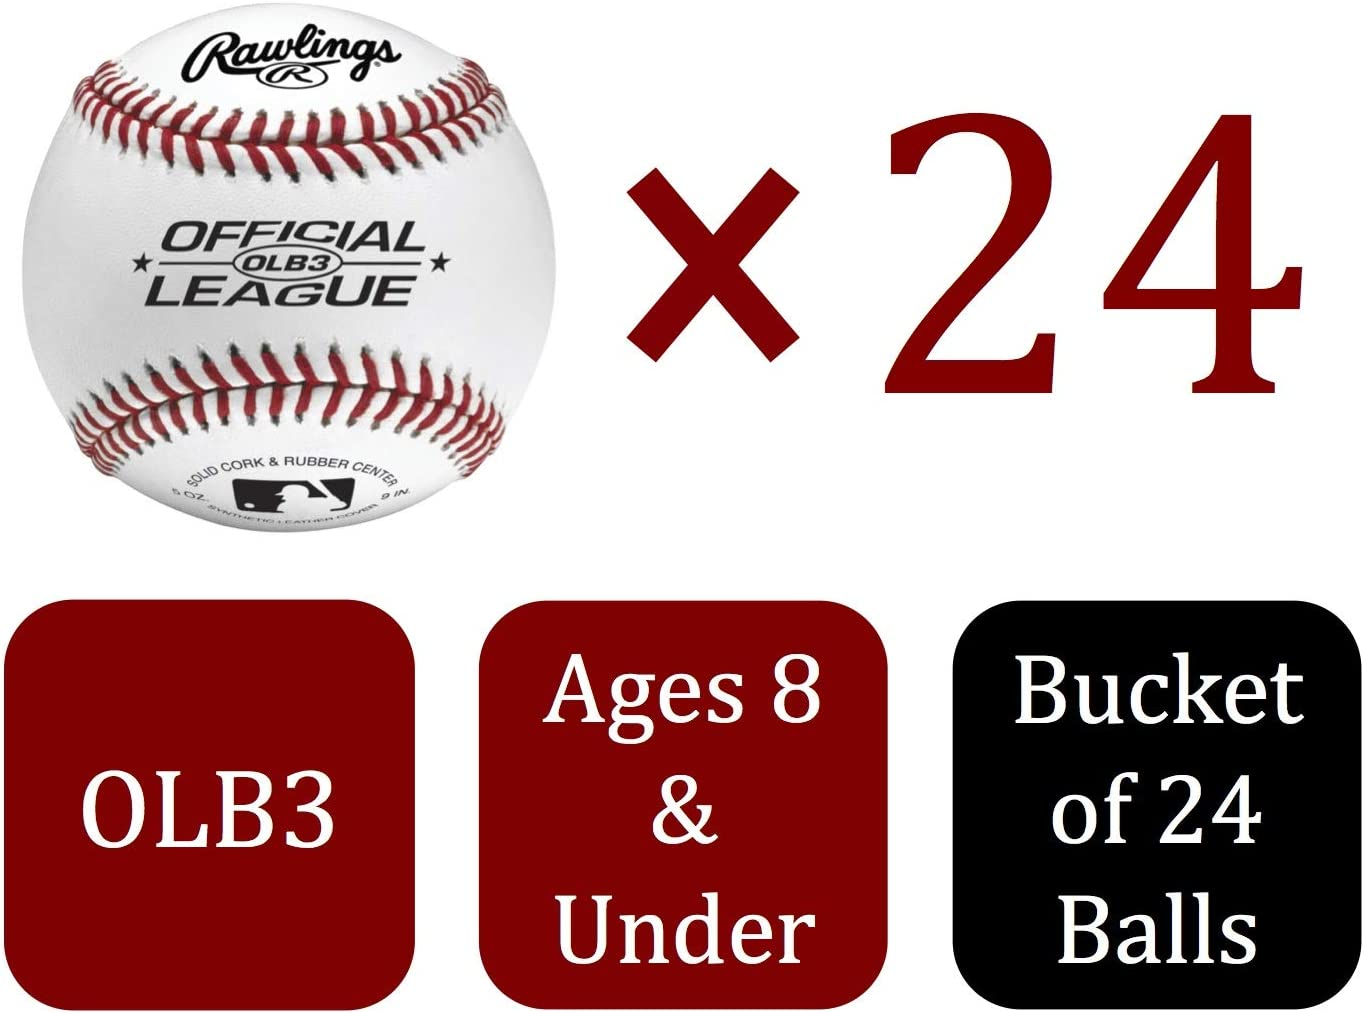 Rawlings Official League Recreational Bucket for sale online